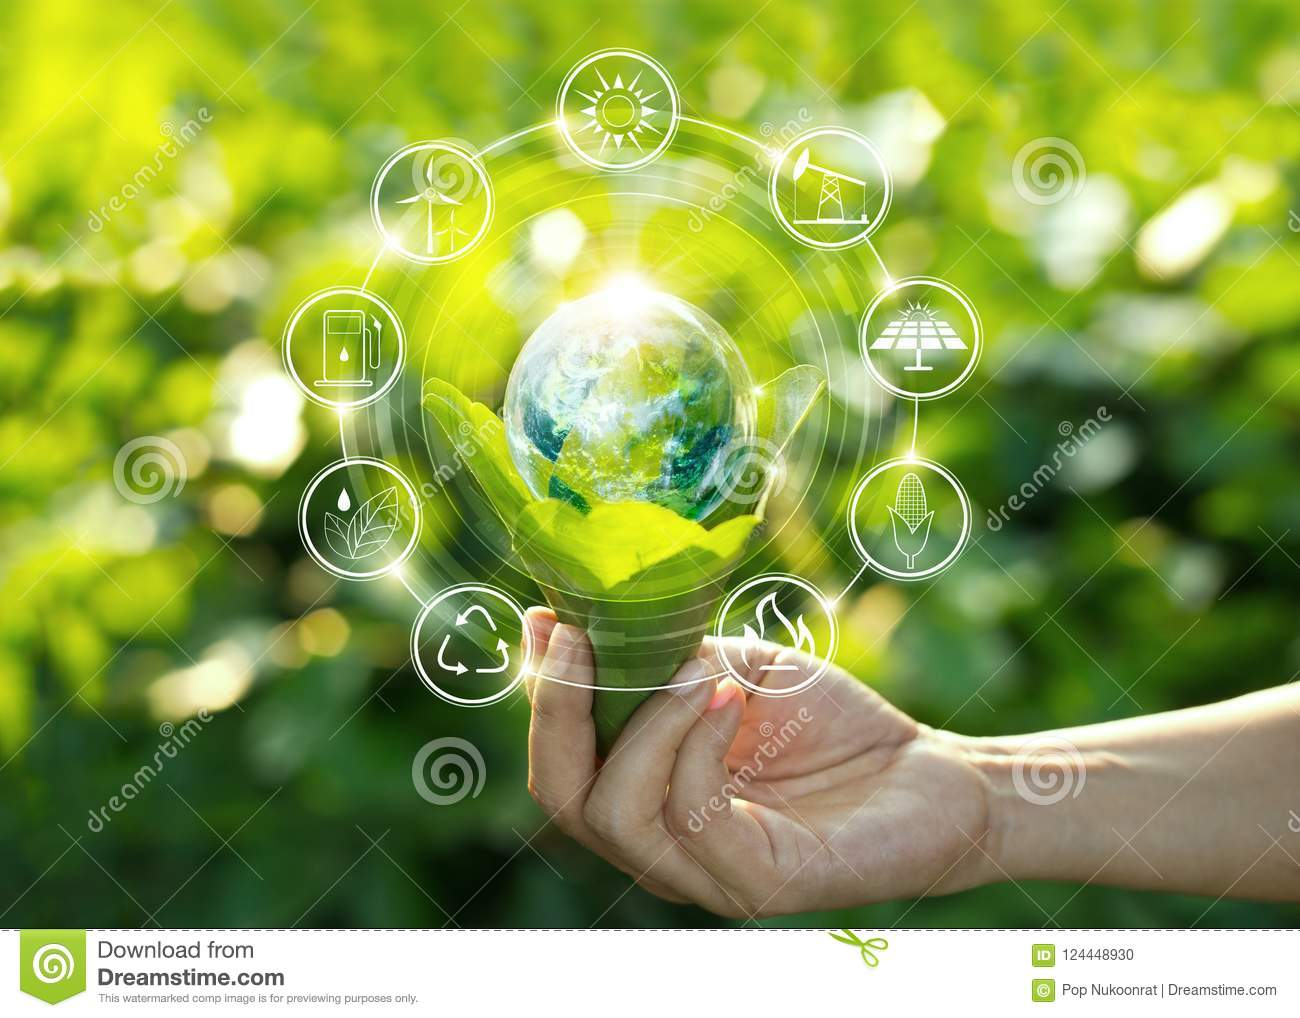 Hand Holding Light Bulb On Green Leaves With Energy Source